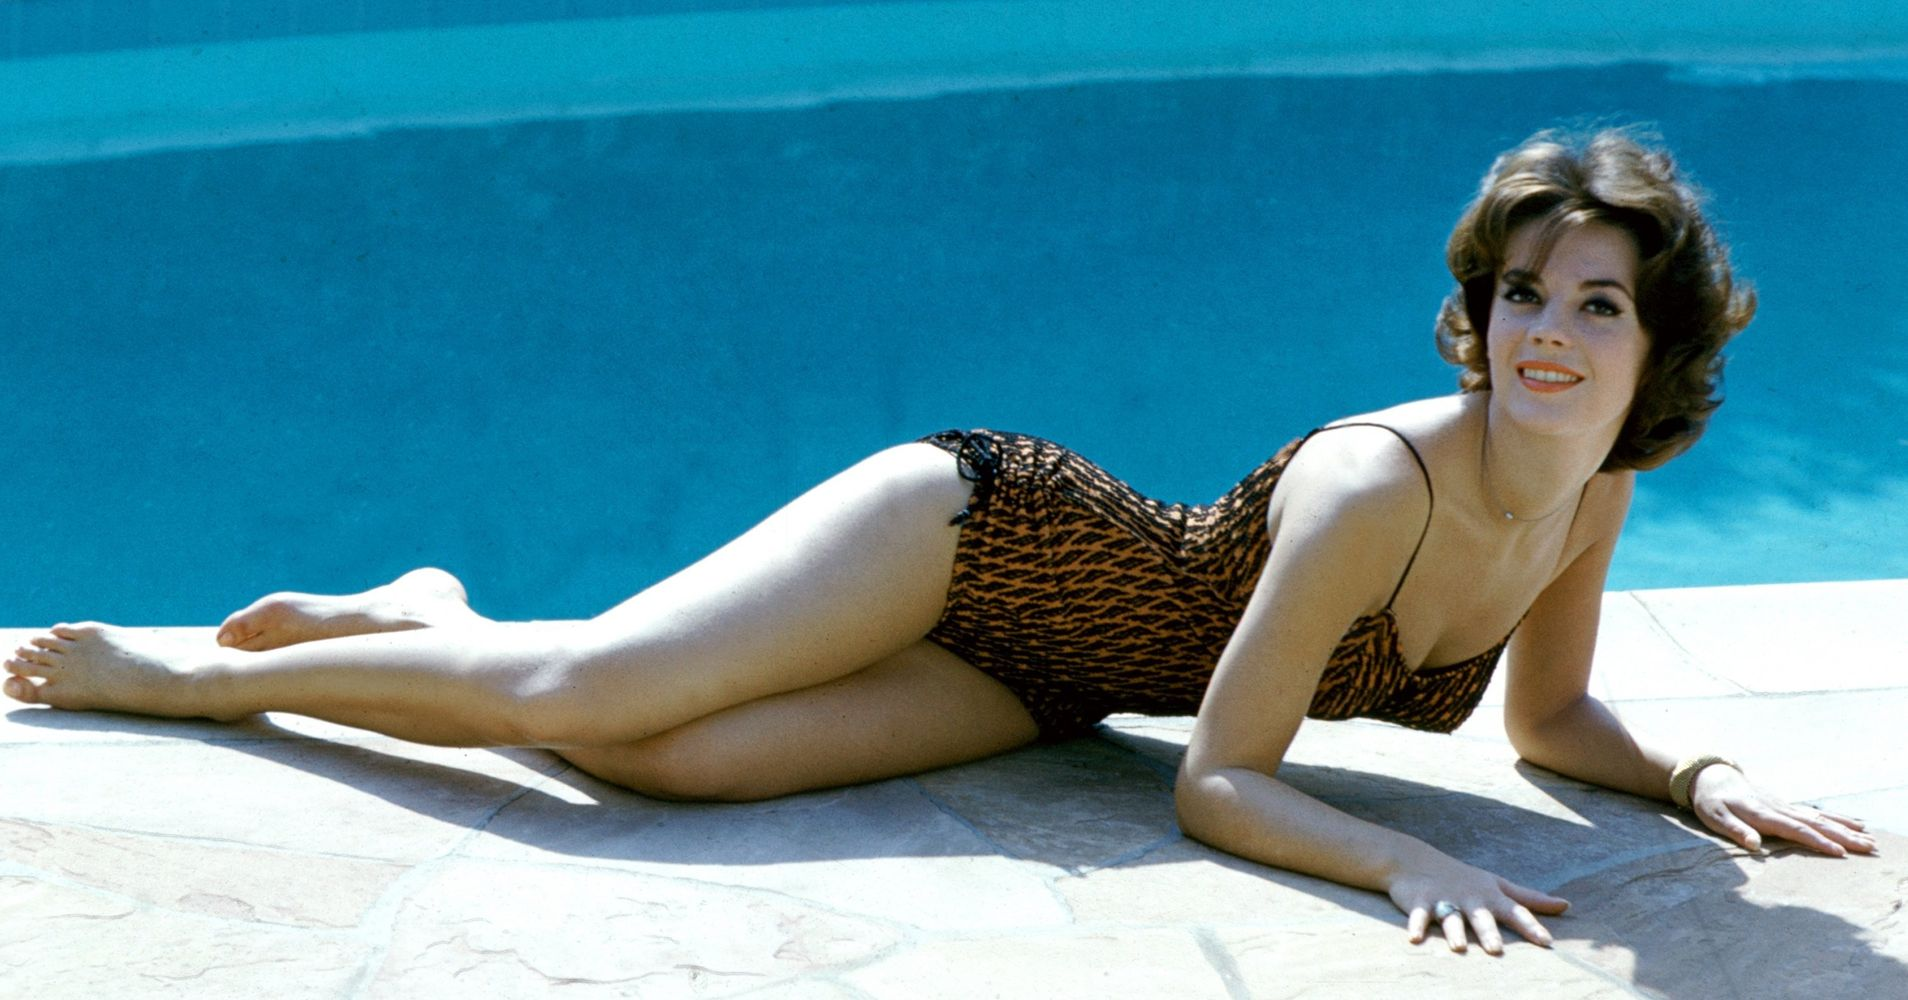 597a6fd09a4 These Old-Hollywood Bombshells Have All The Vintage Swimwear Inspiration  You Need | HuffPost Life